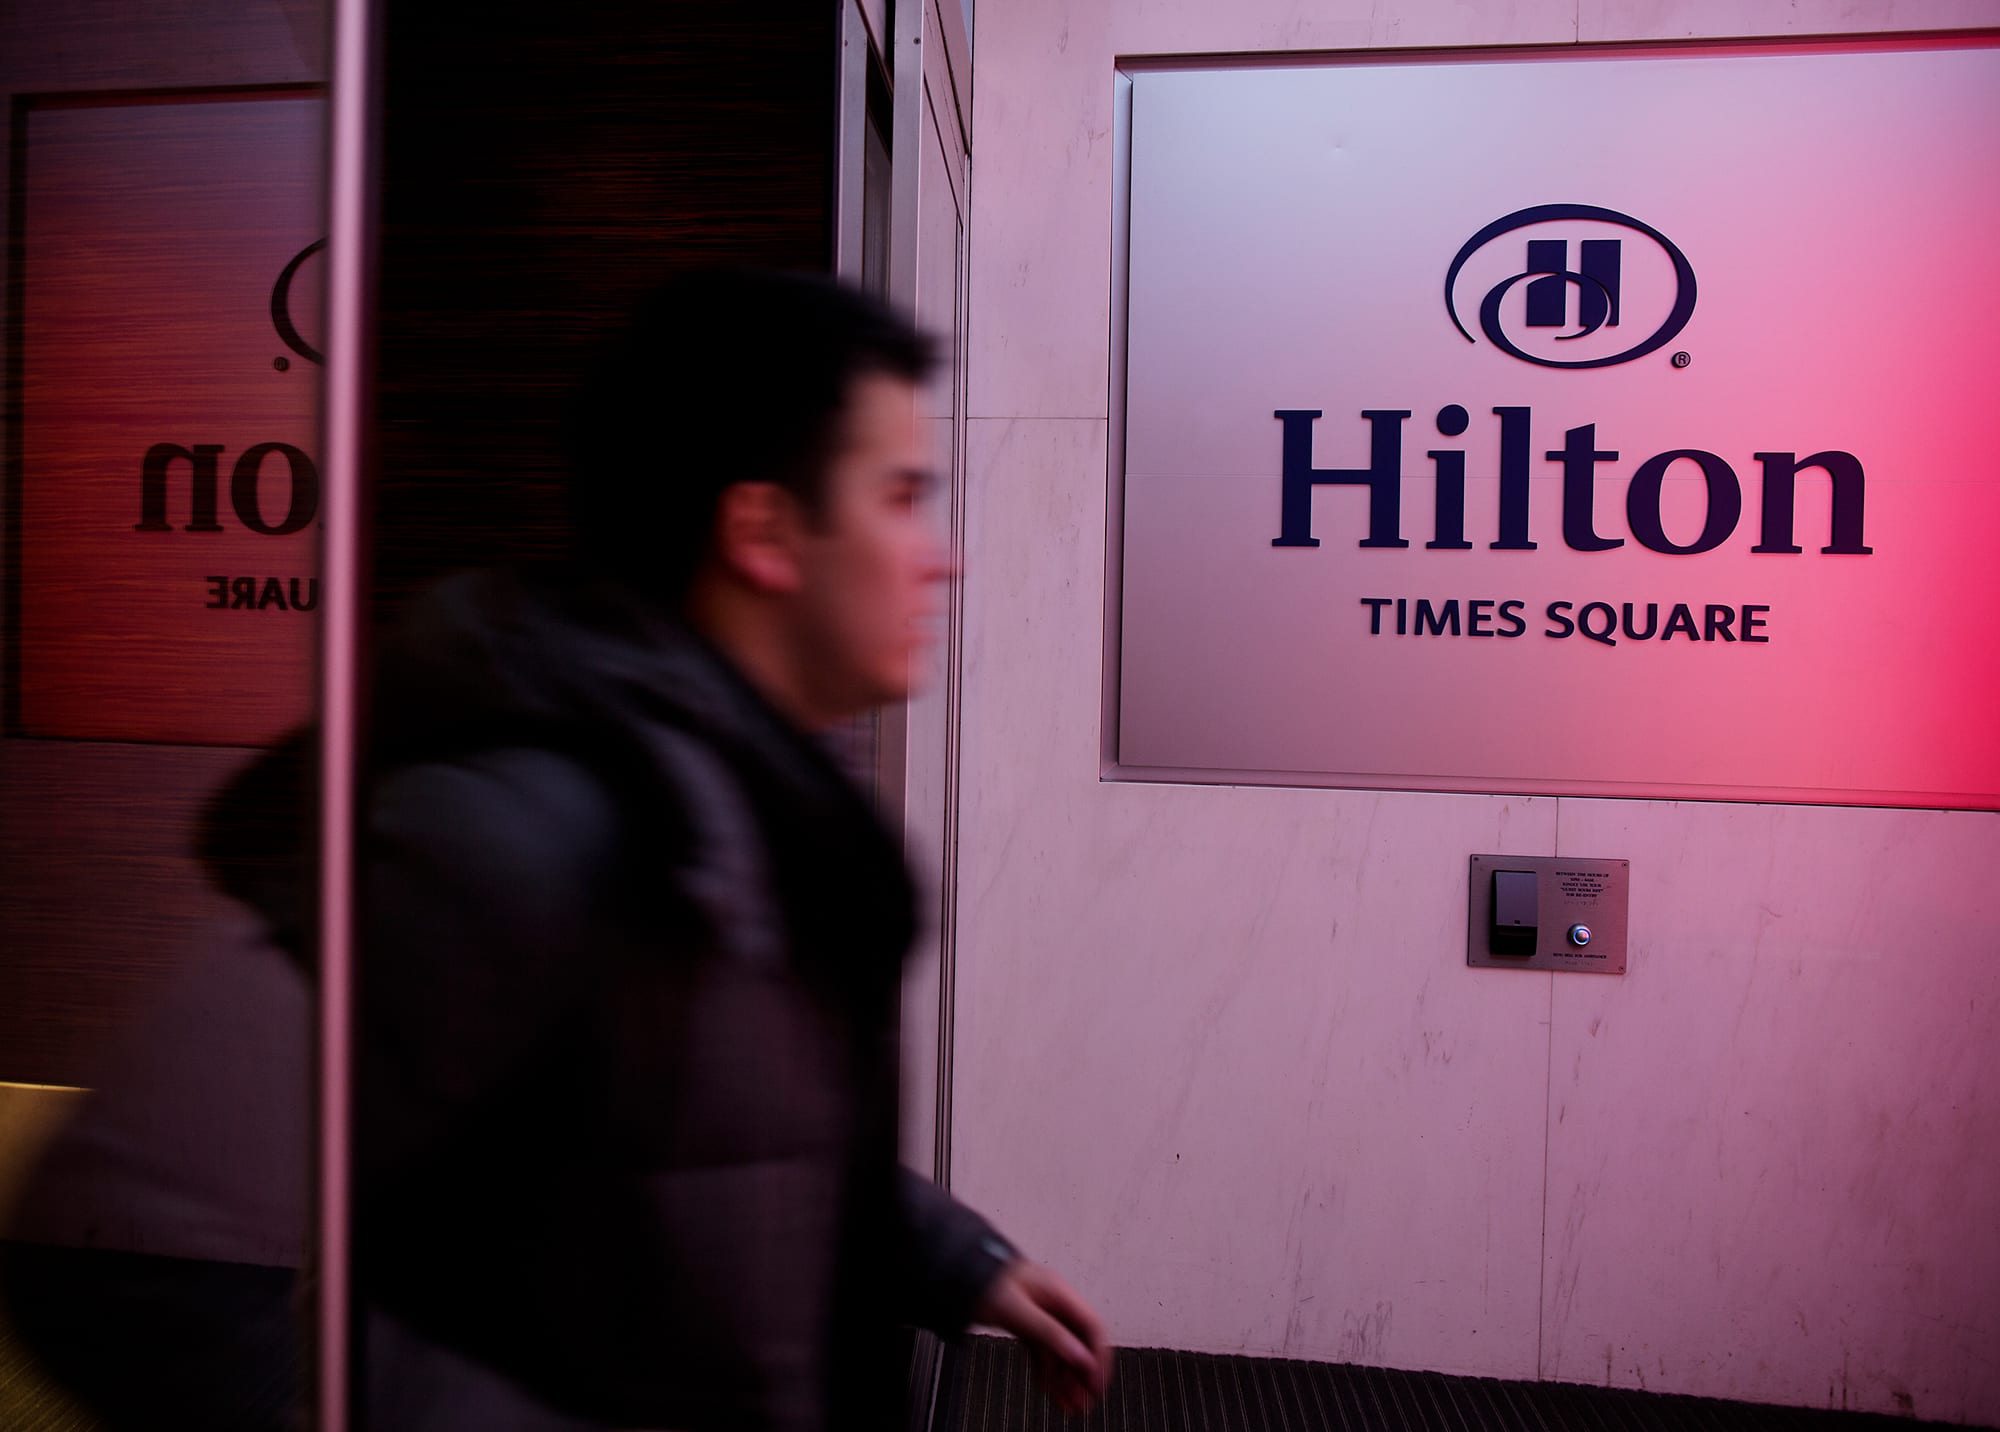 Closure of Hilton Times Square may be 'tip of the iceberg' of troubles facing New York hotels